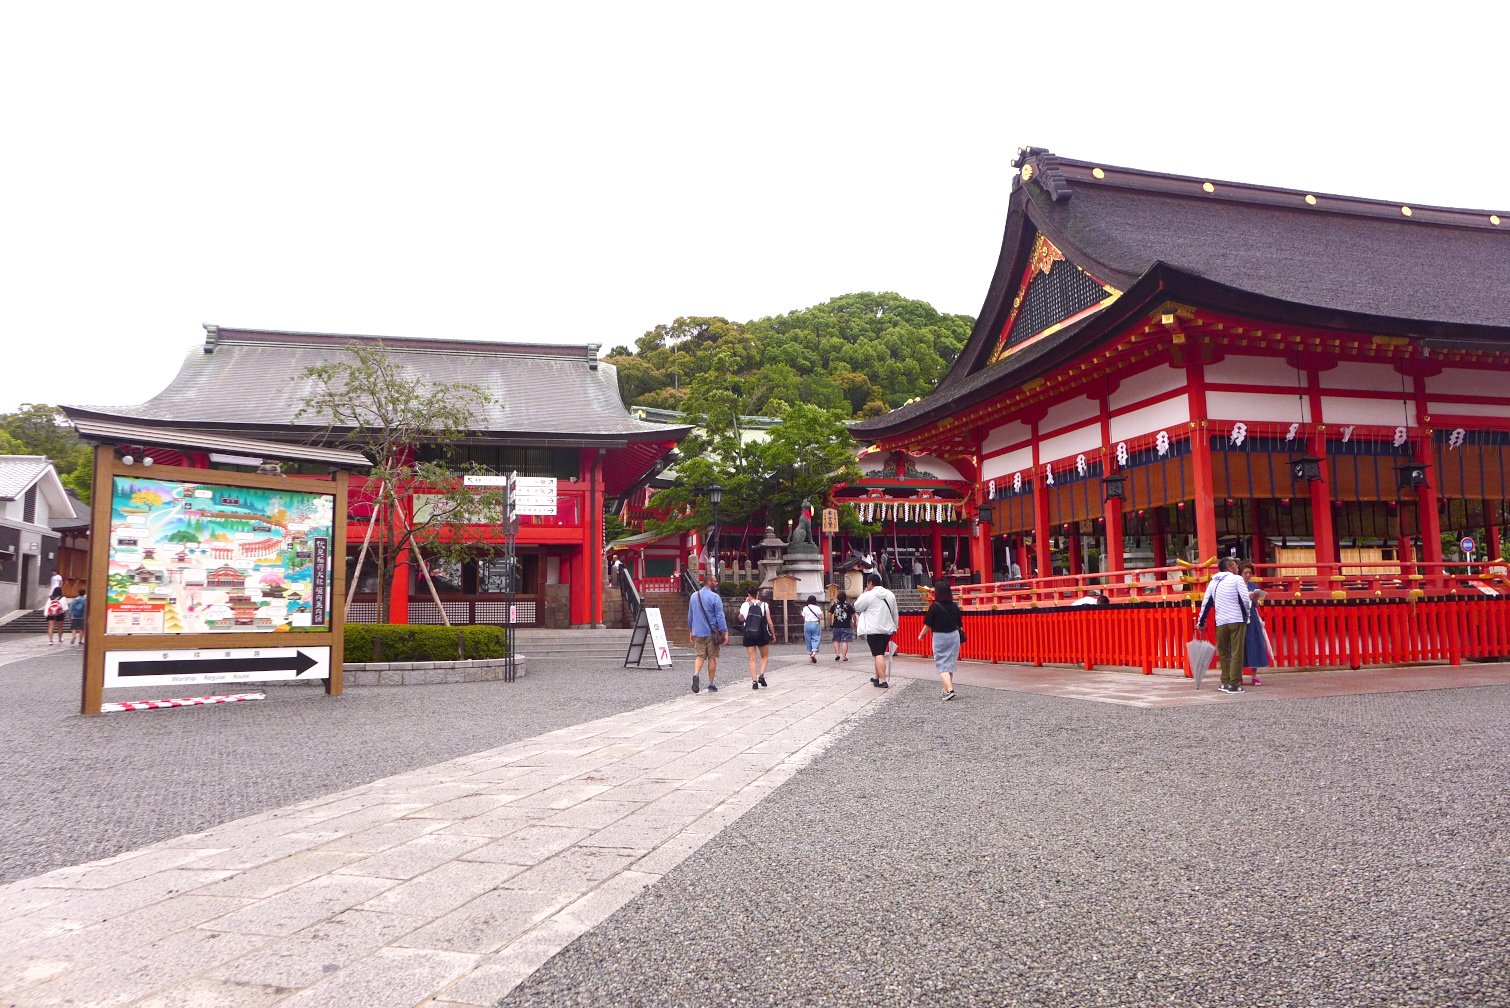 Kyoto JaKyoto Japan travel; What to do in Kyoto Japan; What to see in Kyoto Japan; D.I.Y. Japan itinerarypan travel; What to do in Kyoto Japan; What to see in Kyoto Japan; D.I.Y. Japan itinerary